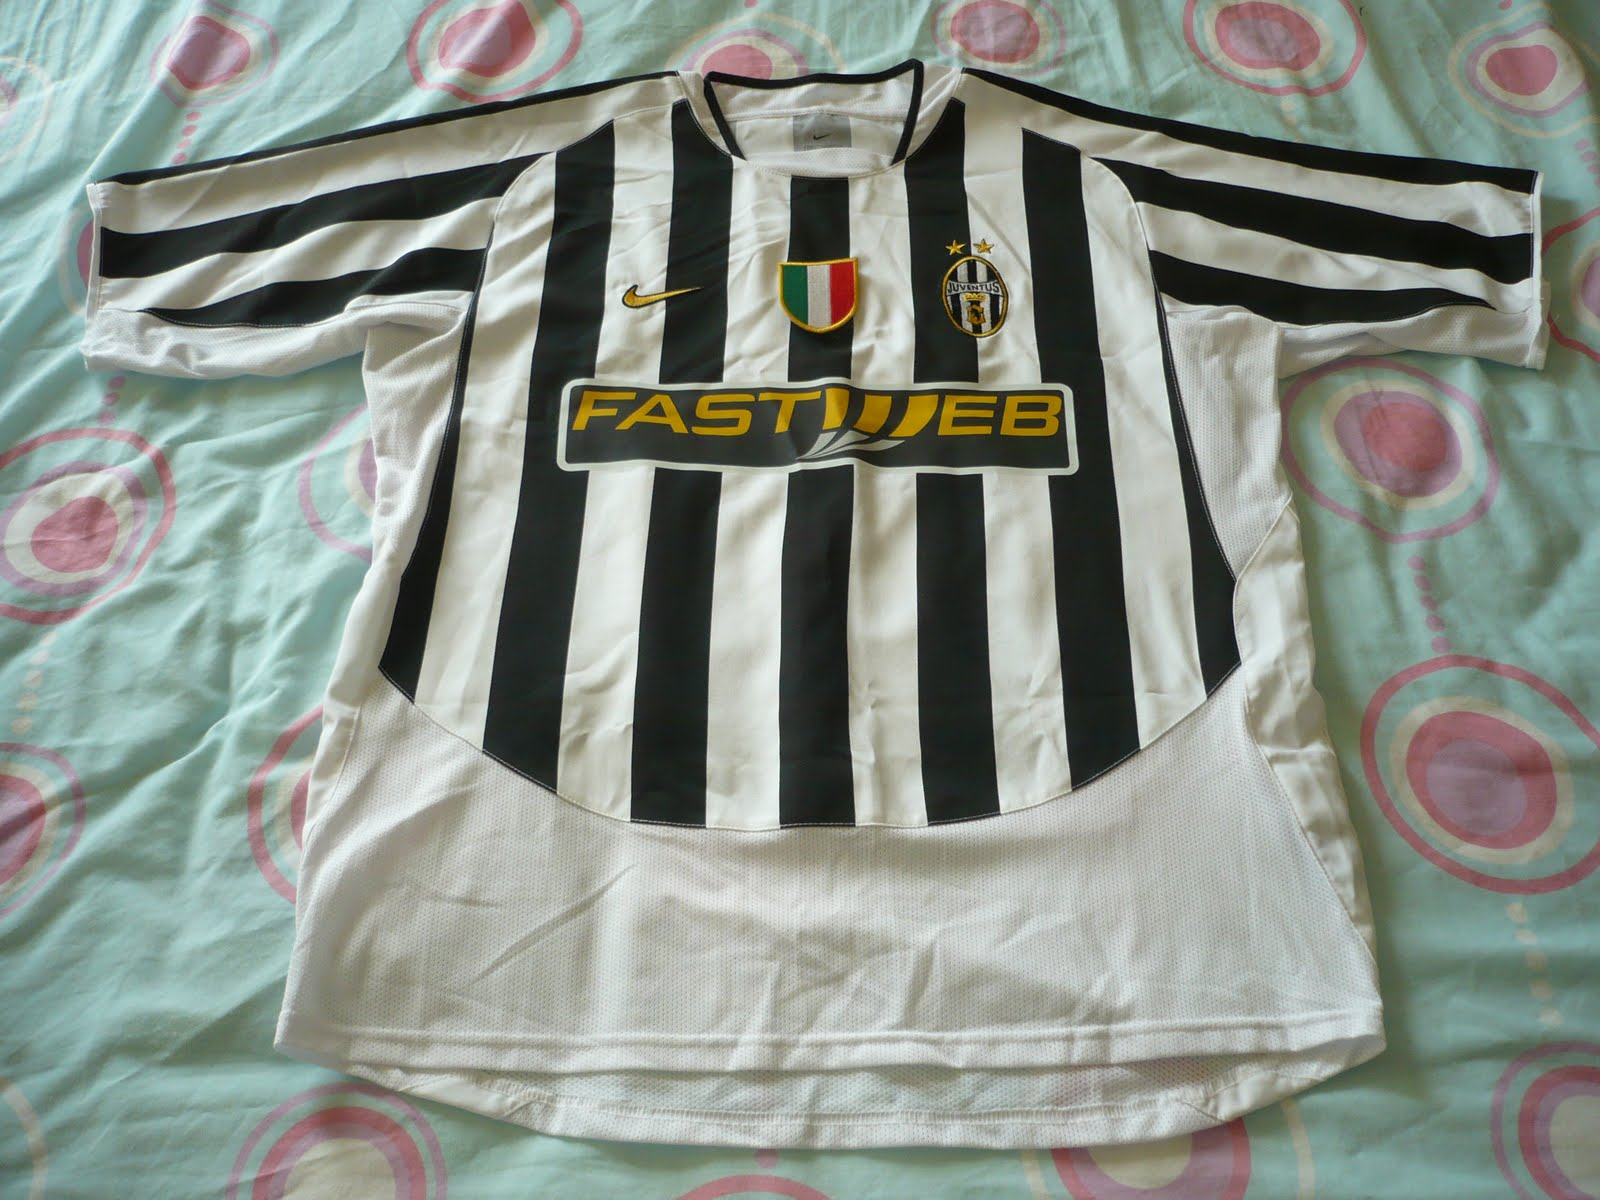 juventus shirts Photo